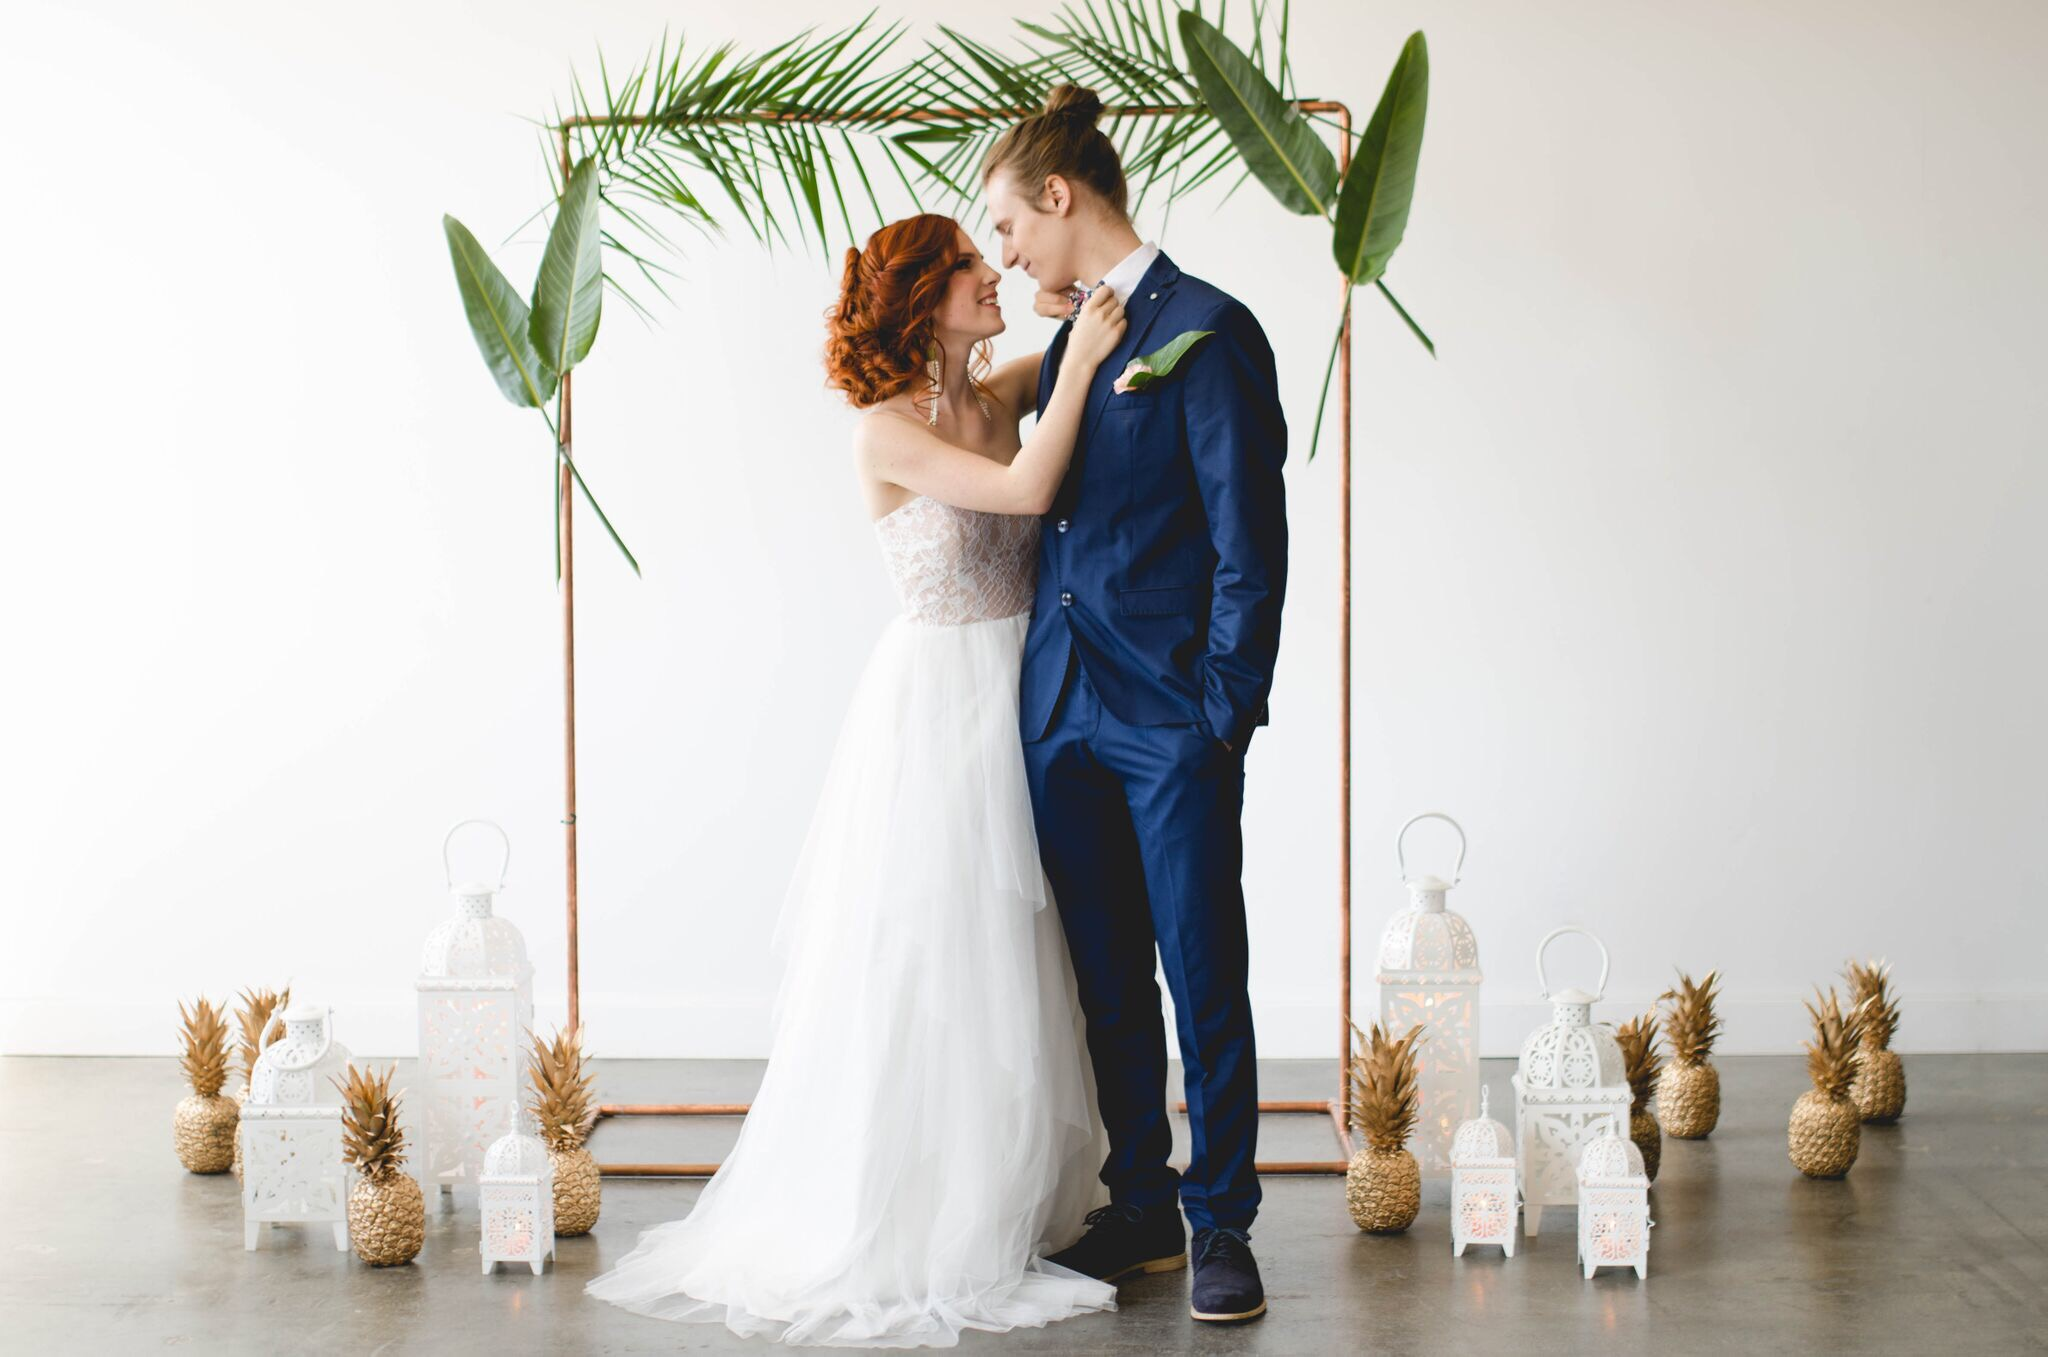 Summer Wedding Inspo: Tropical Wedding - Pâtisserie Petit Lapin